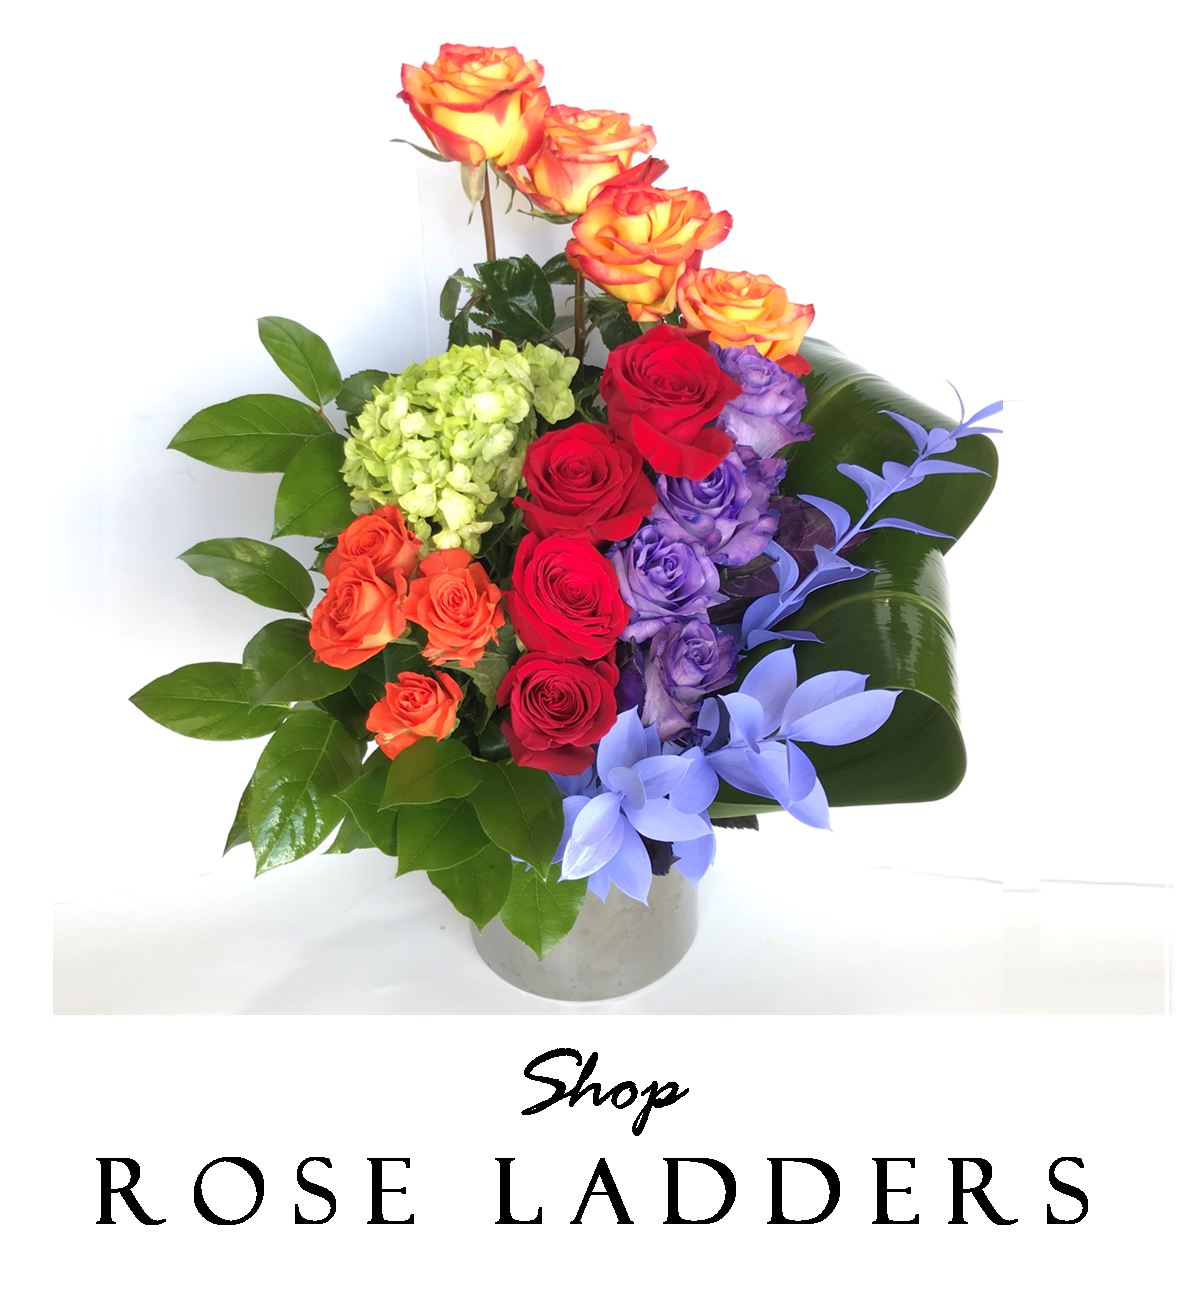 we-make-el-paso-bloom-with-luxury-gifts-rose-boxes-angies-floral-designs-angies-rose-ladders-floral-designs-rose-ladders-el-paso-florist-79912-west-angies-flower.png